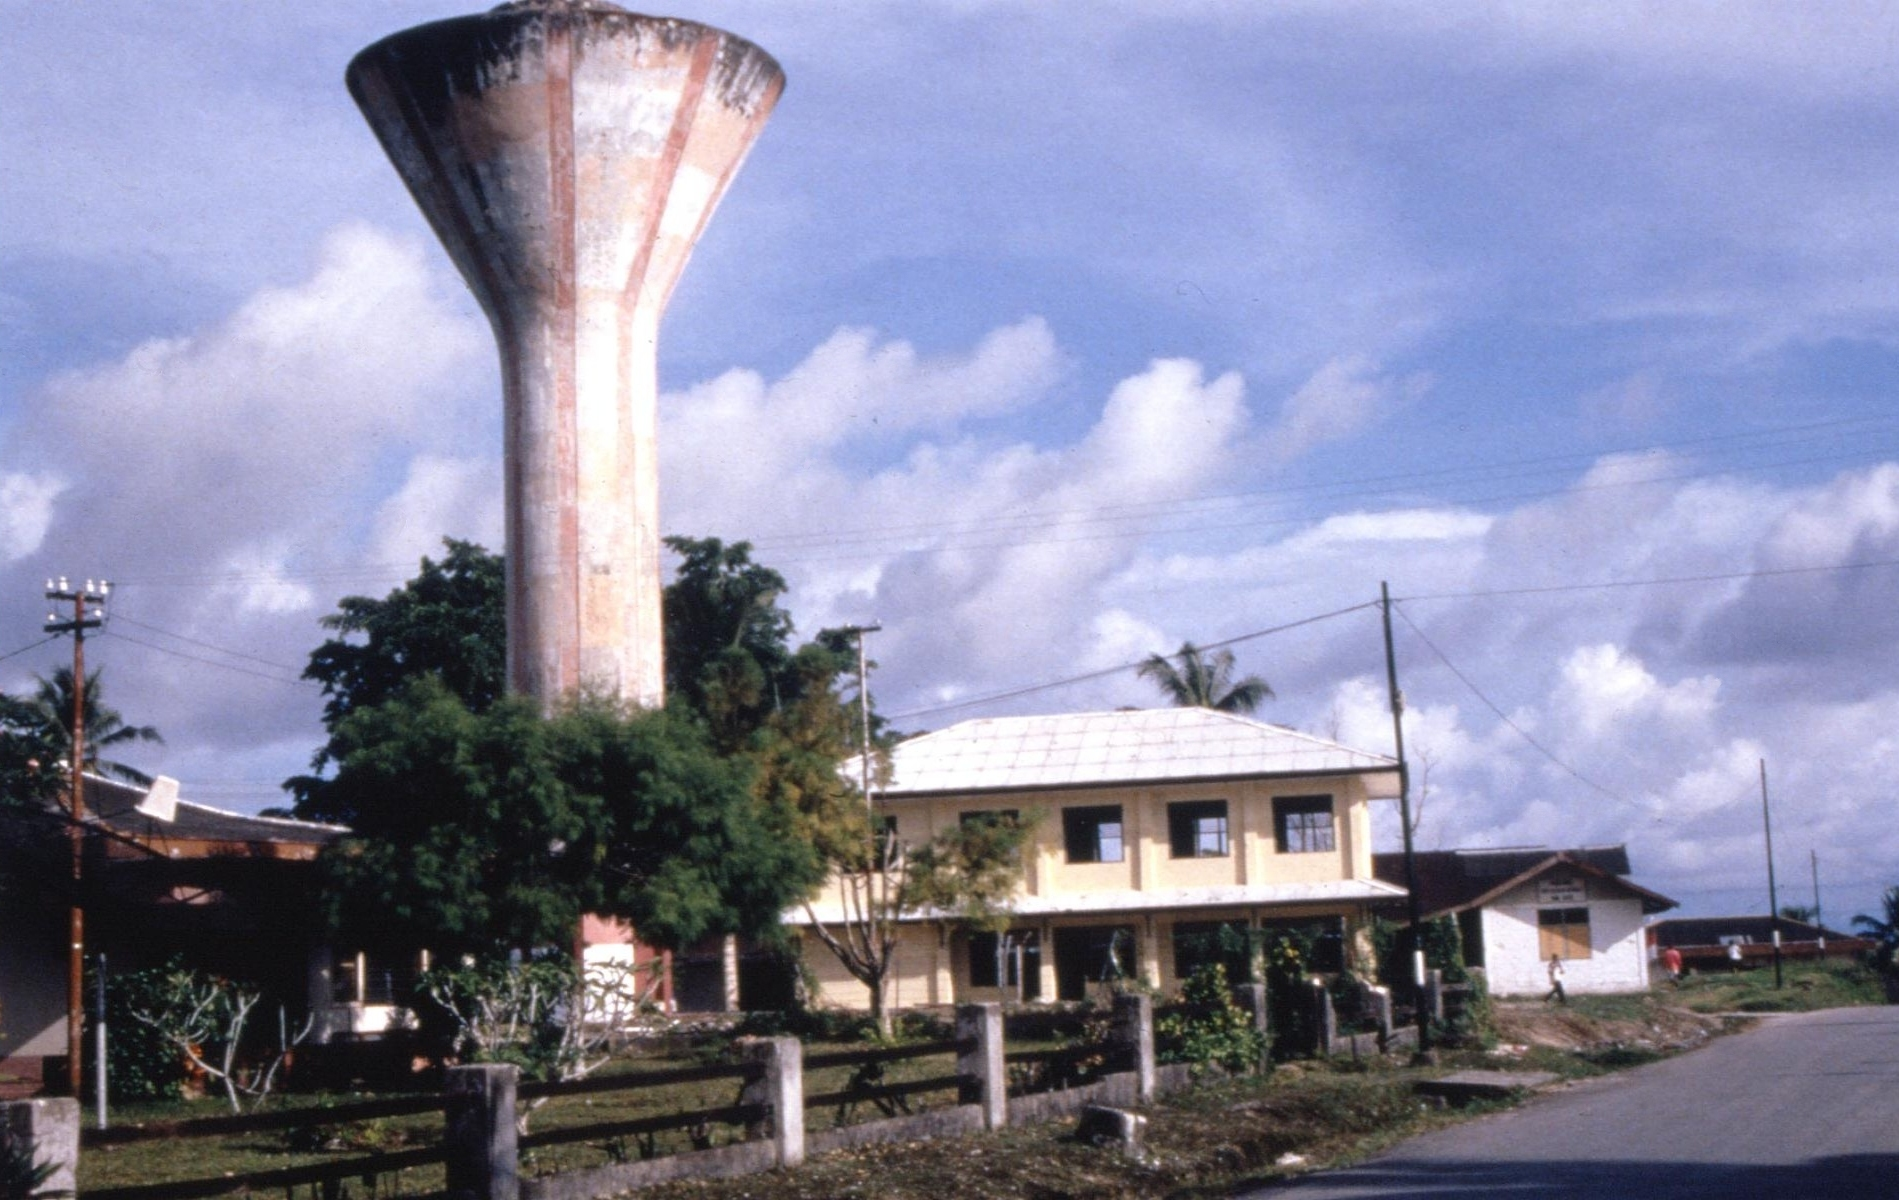 Andrew_Kilvert_WP_photos_1999-2000_water_tower2